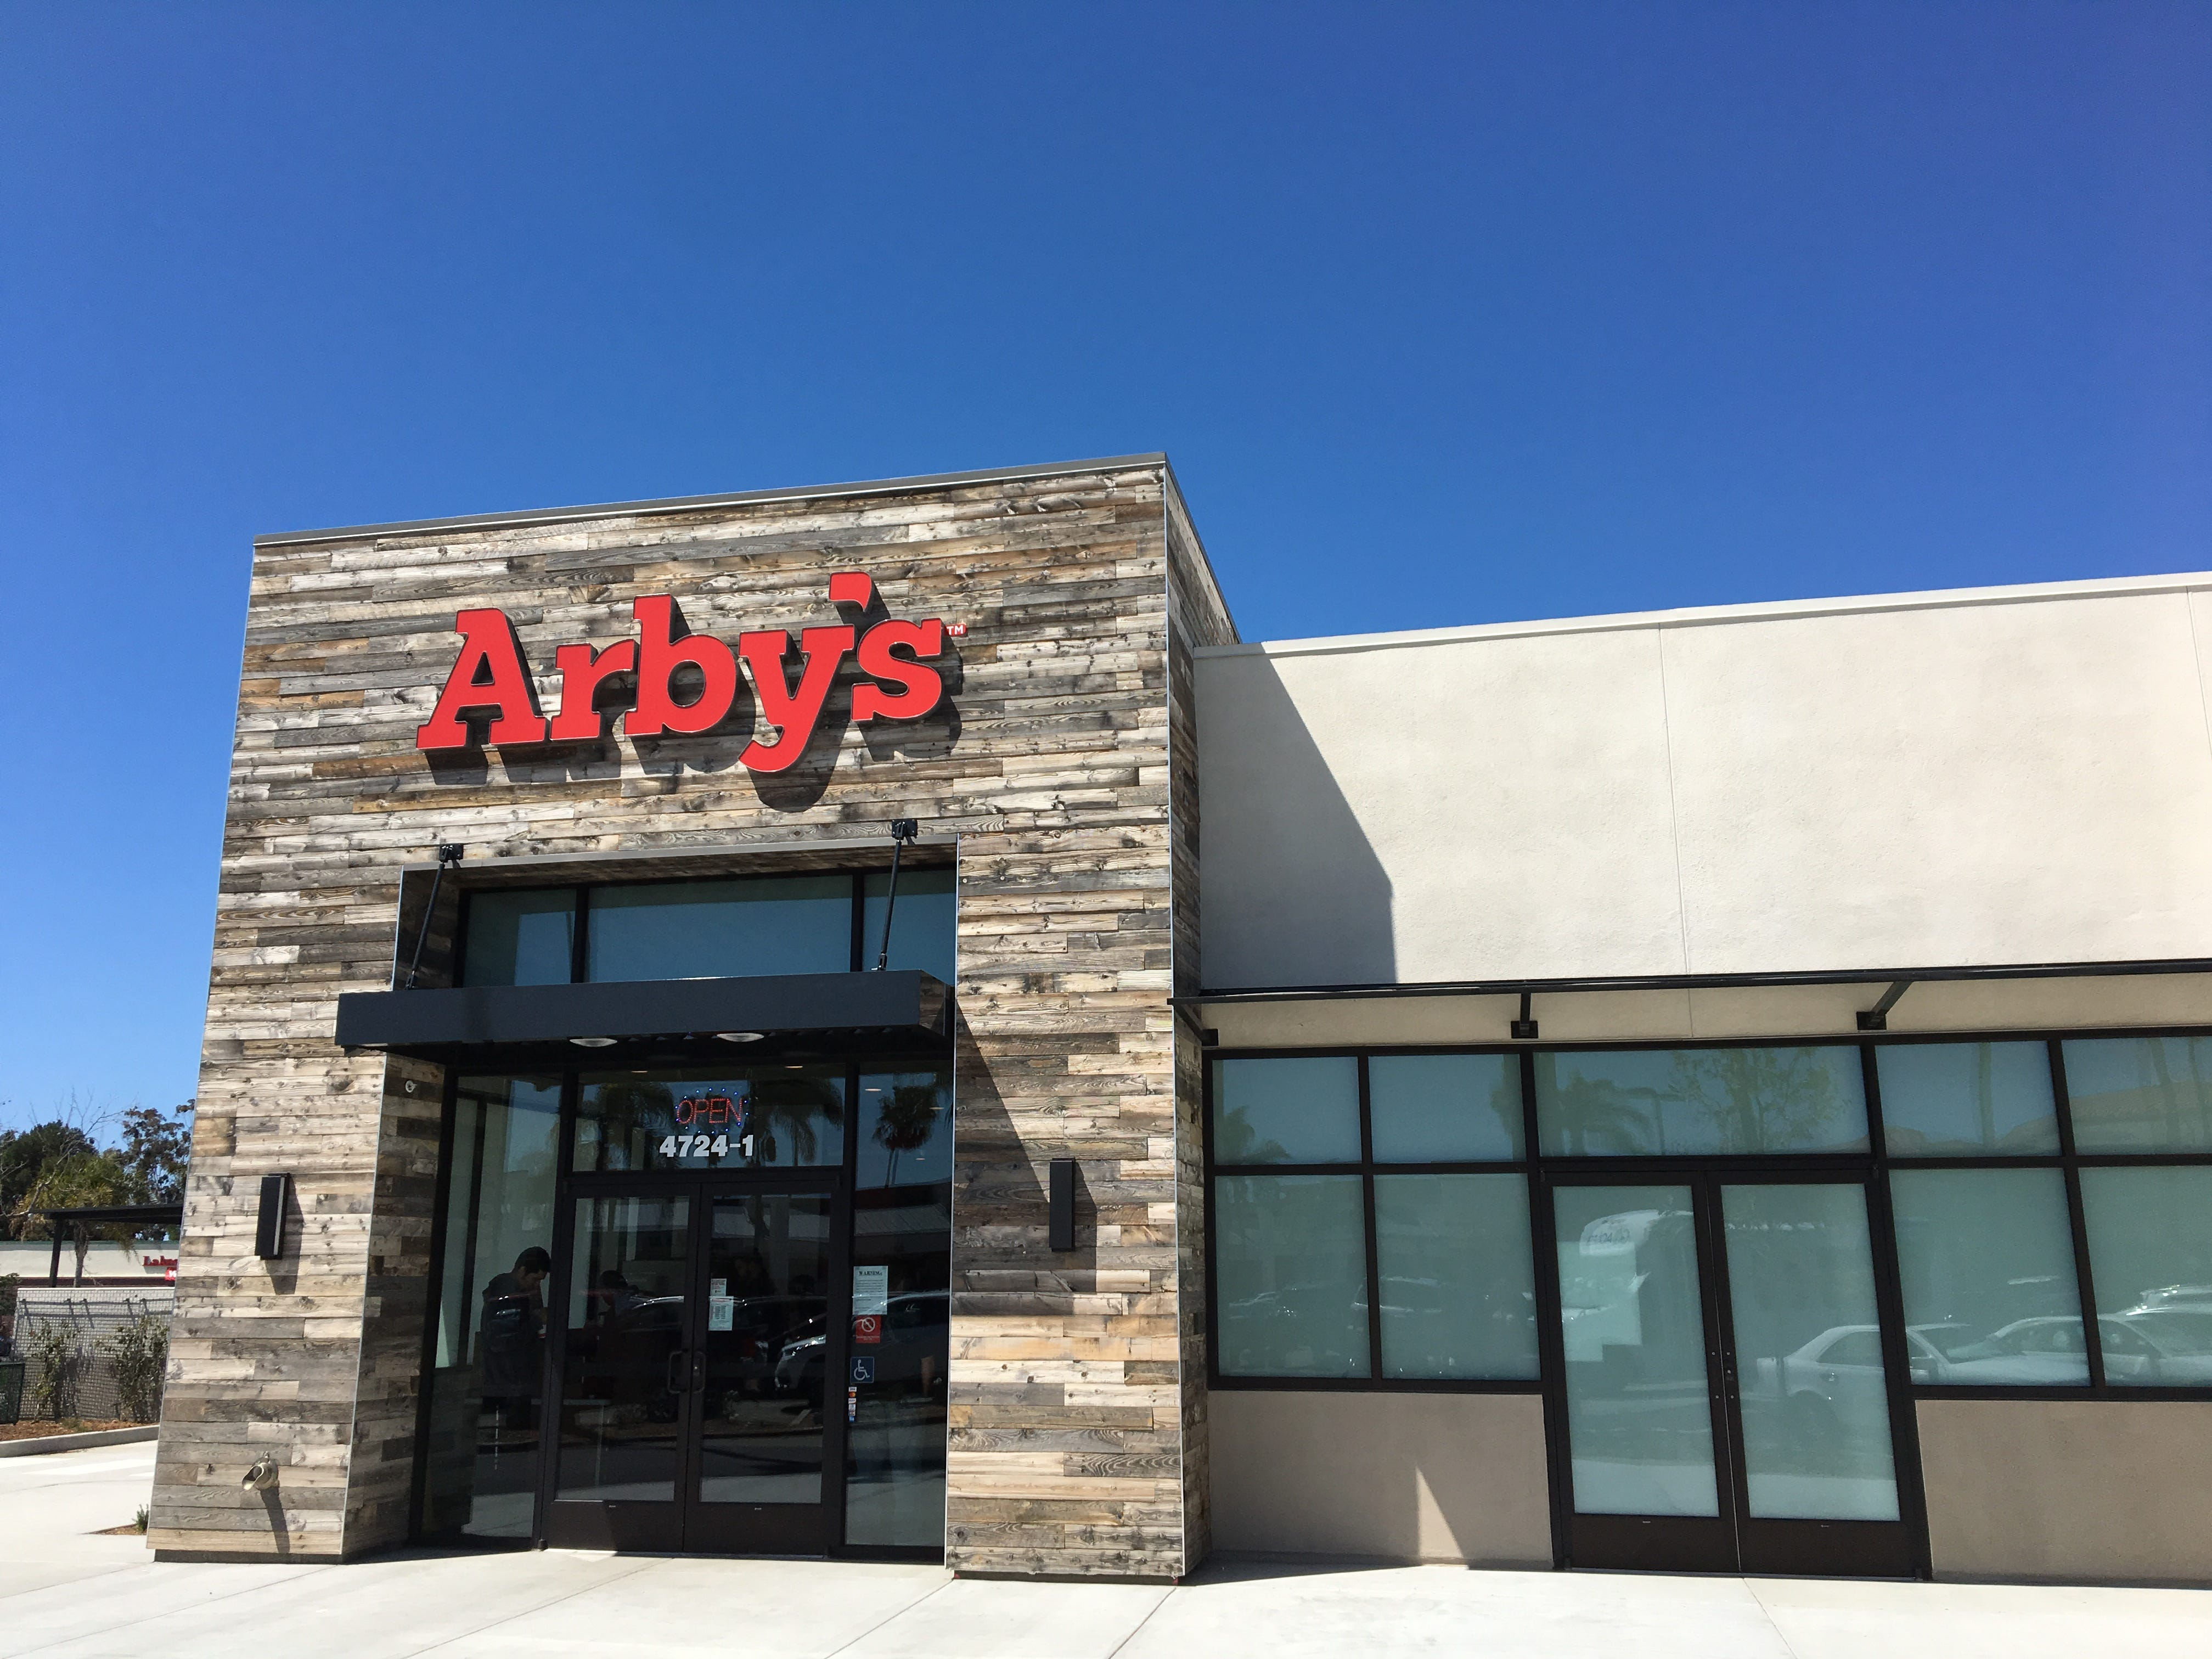 After 50 years at its original Main Street location in Ventura, Arby's has moved to a new Telephone Road address in the Riviera Shopping Center.